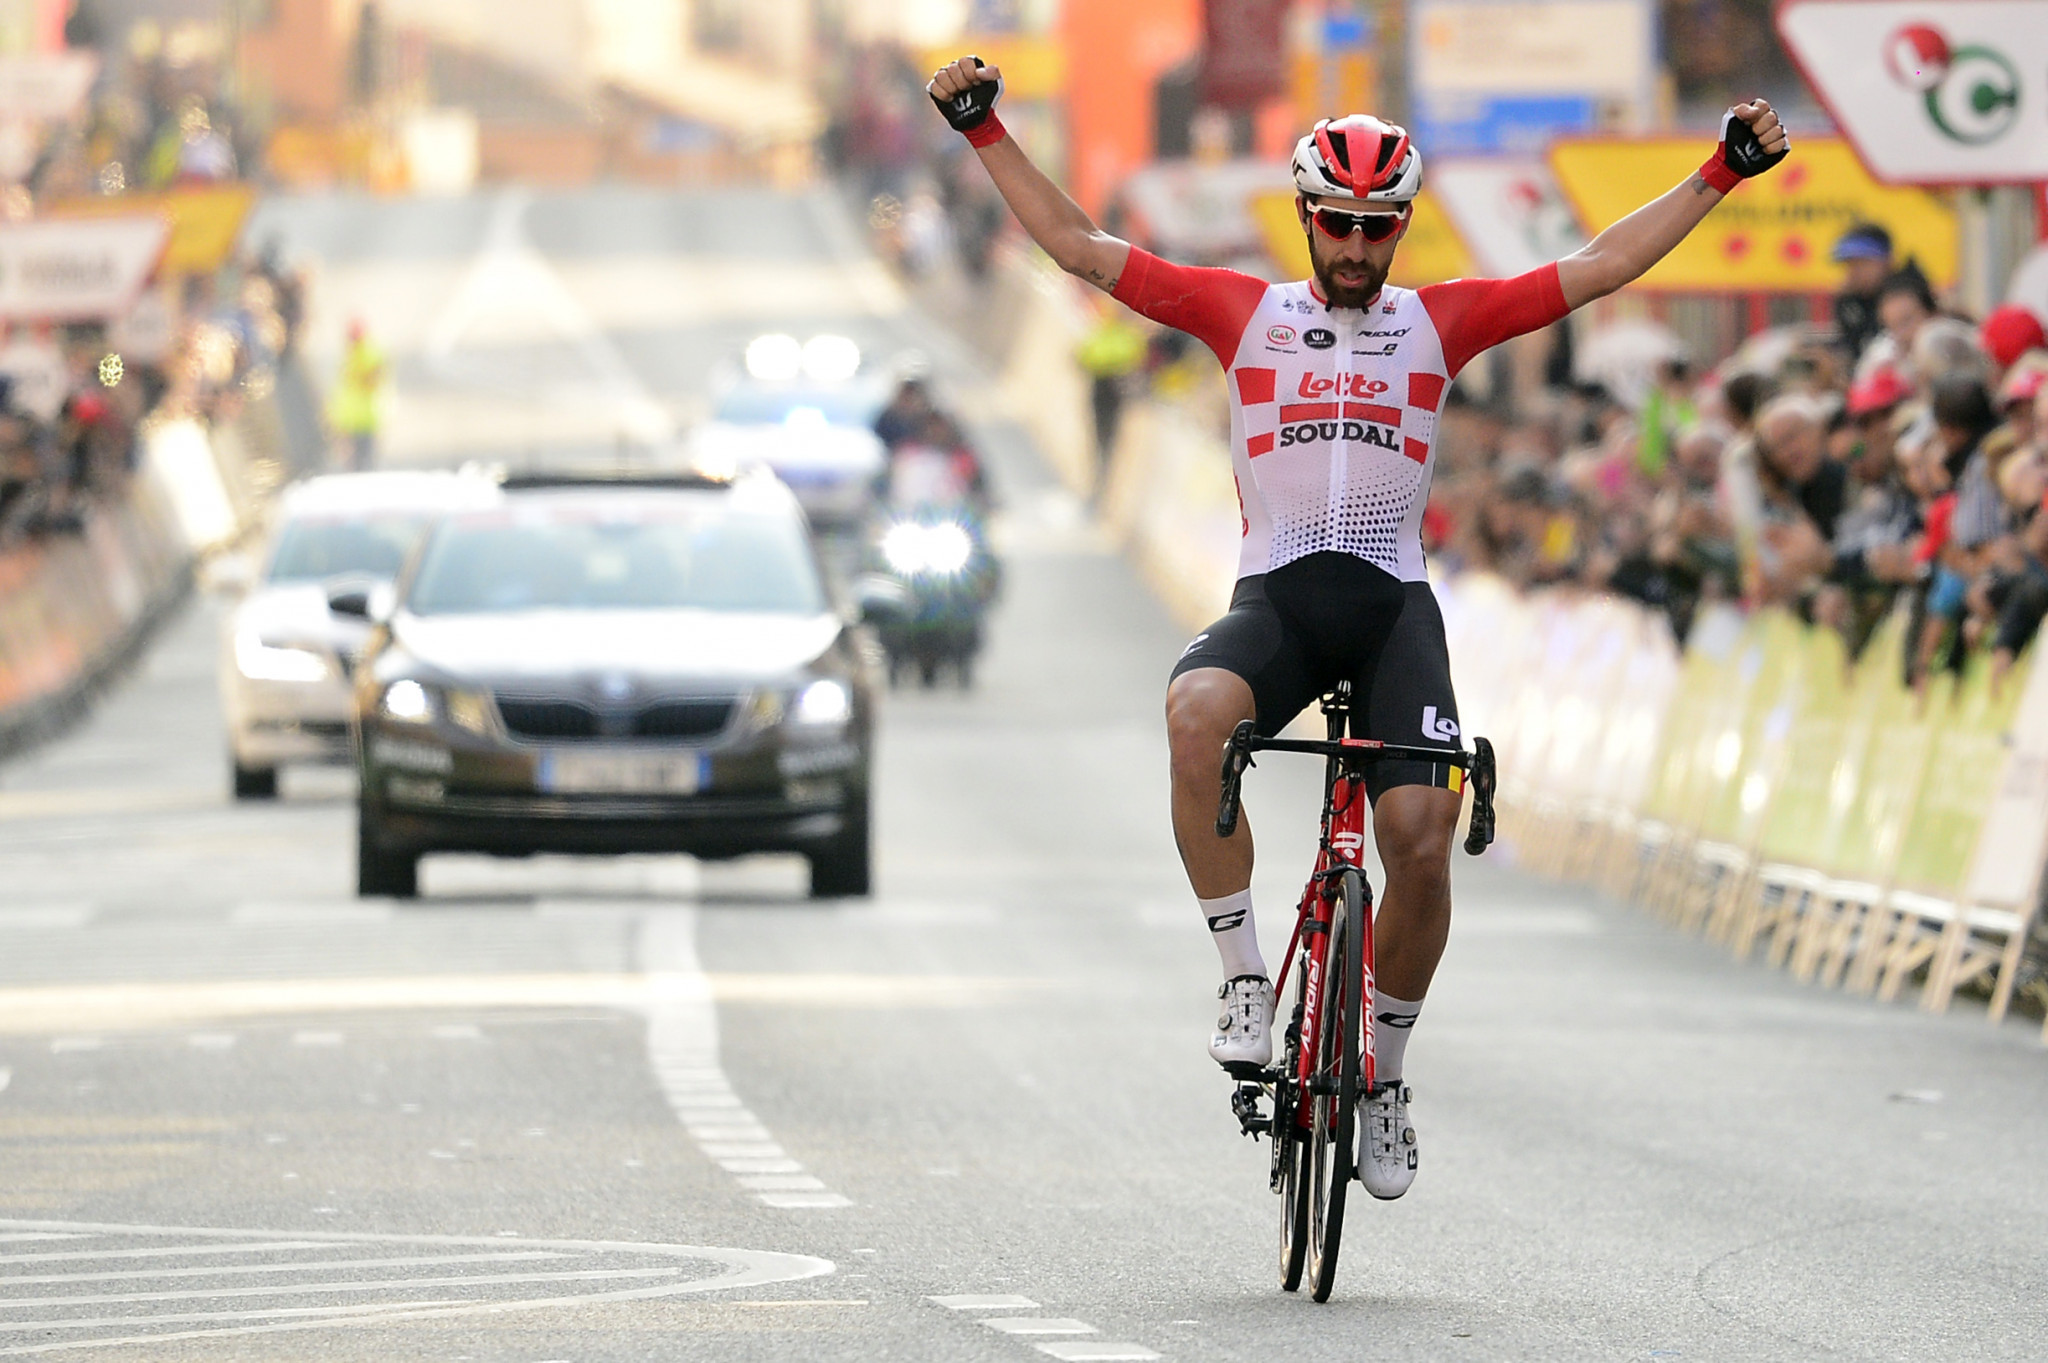 Thomas De Gendt soloed to victory on the first day of the Volta a Catalunya ©Getty Images